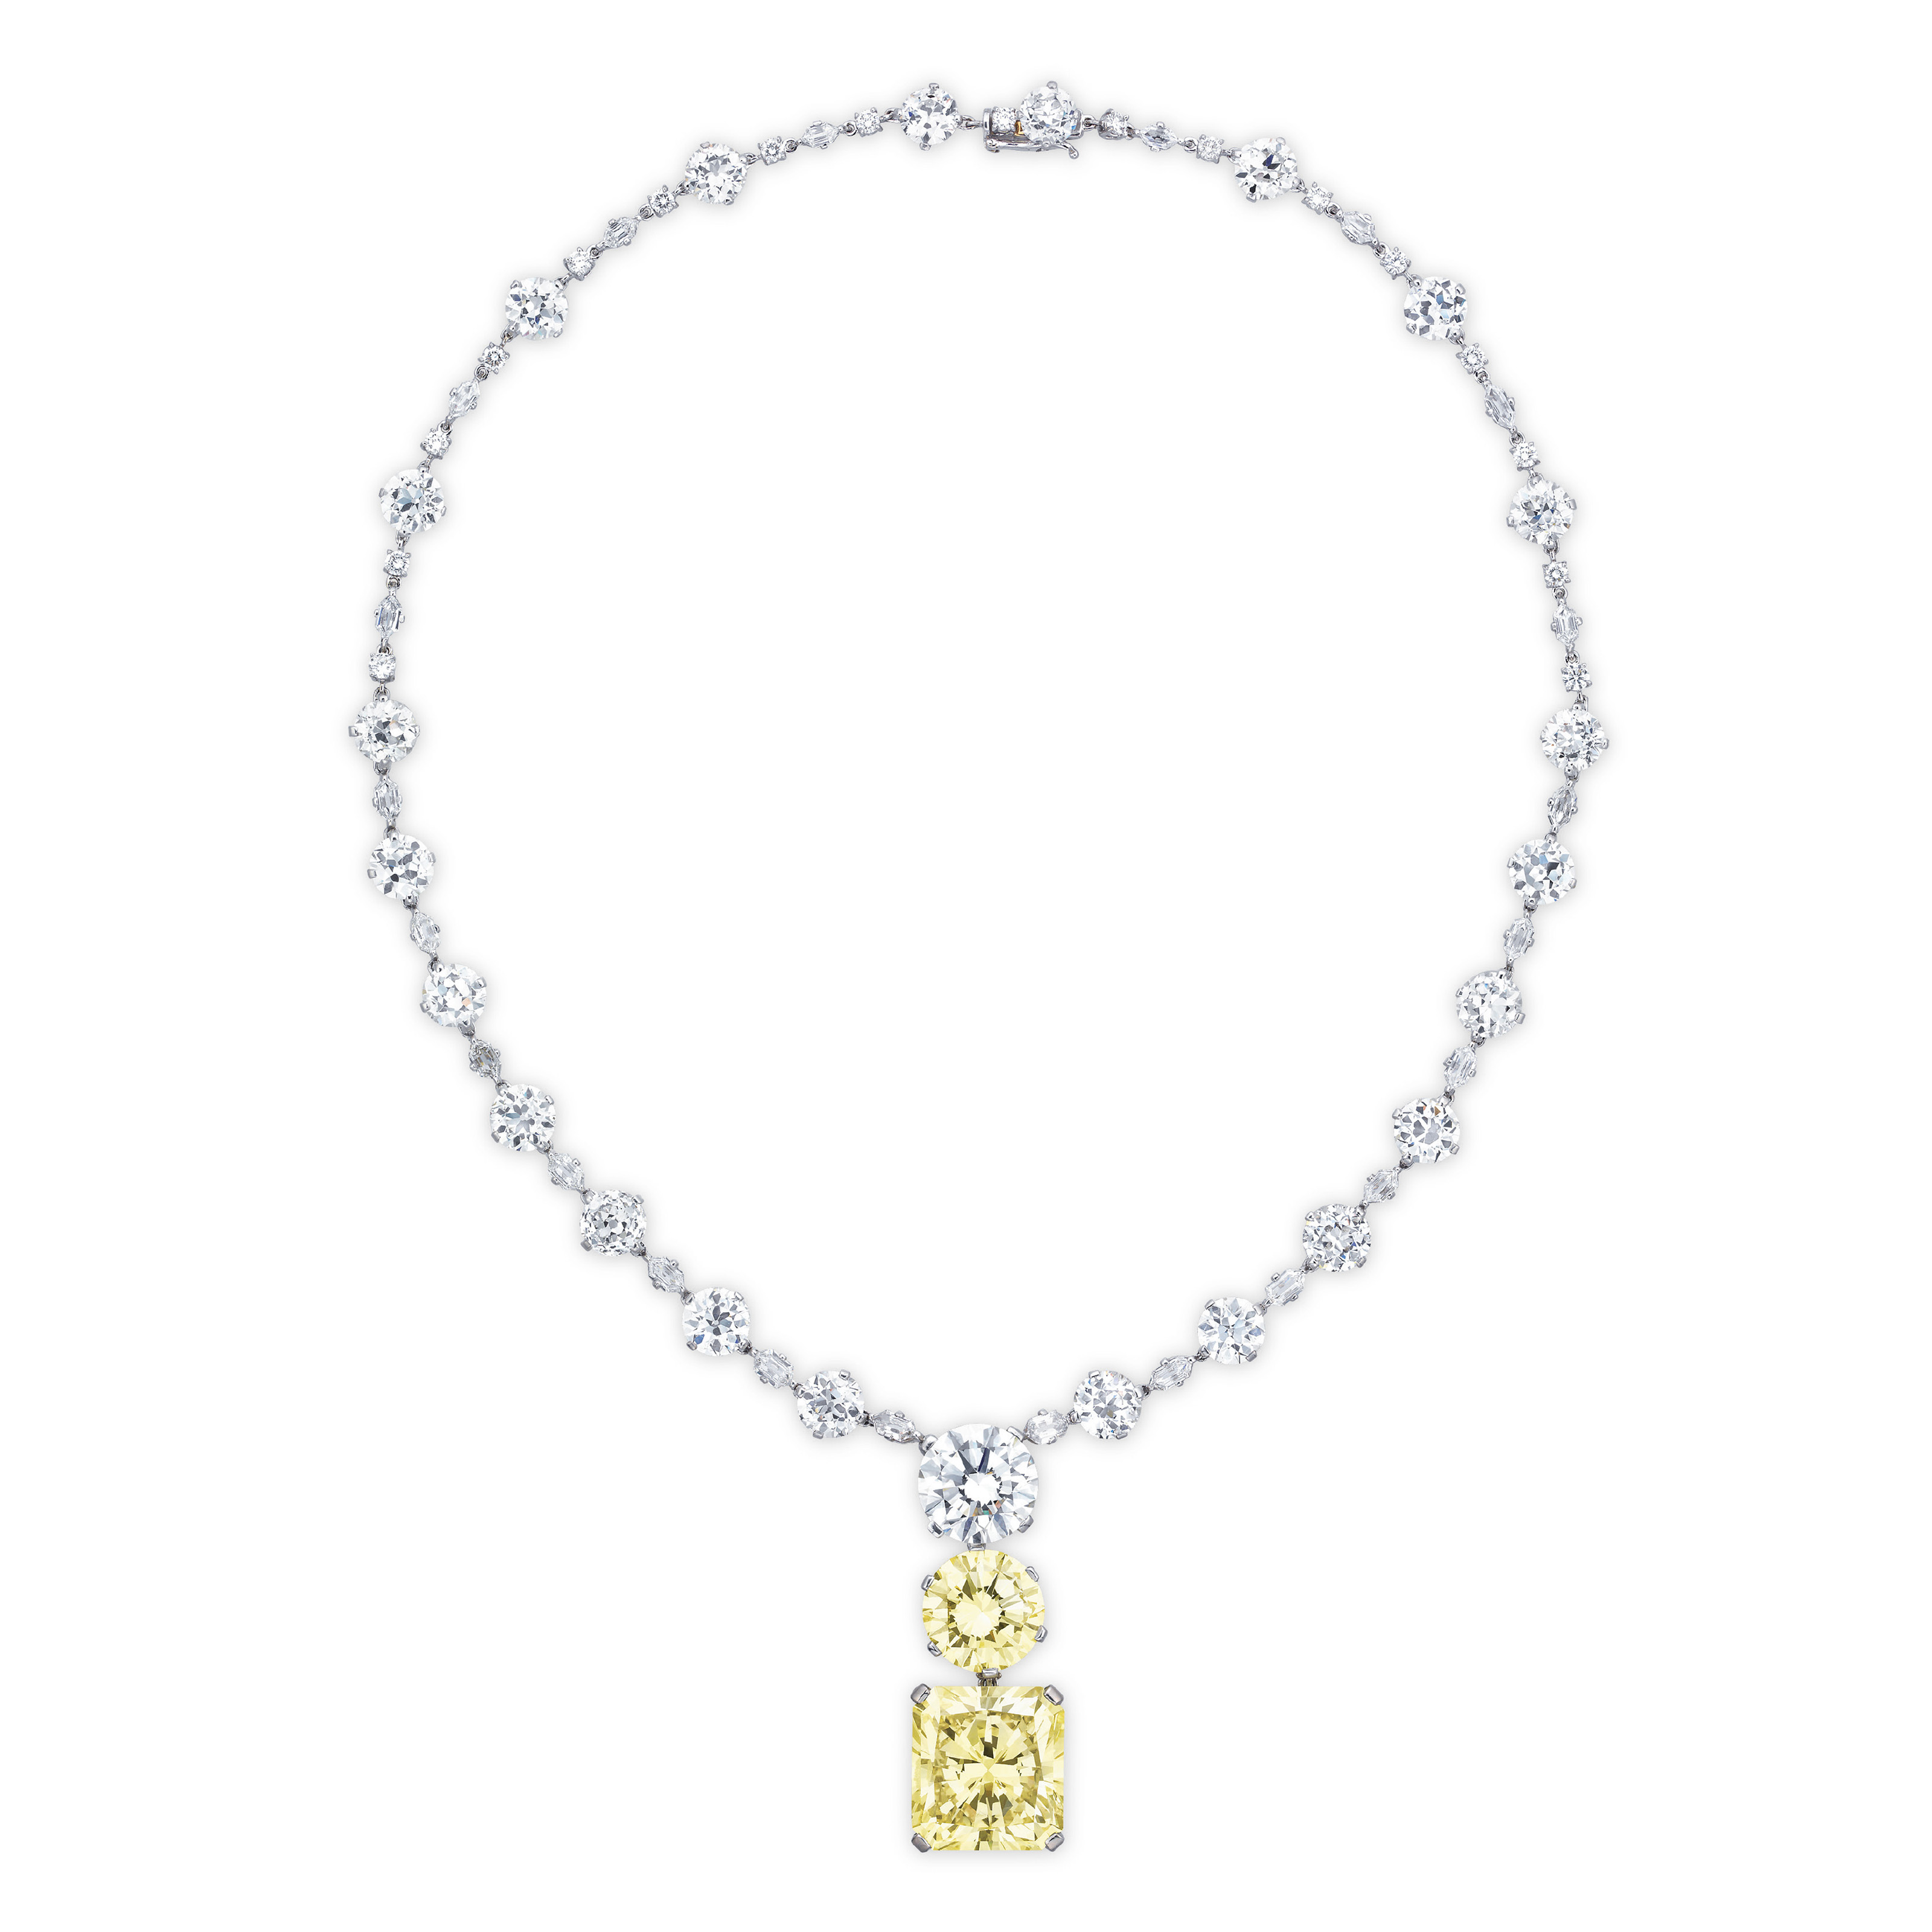 A SUPERB COLOURED DIAMOND AND DIAMOND PENDANT NECKLACE, BY JAHAN